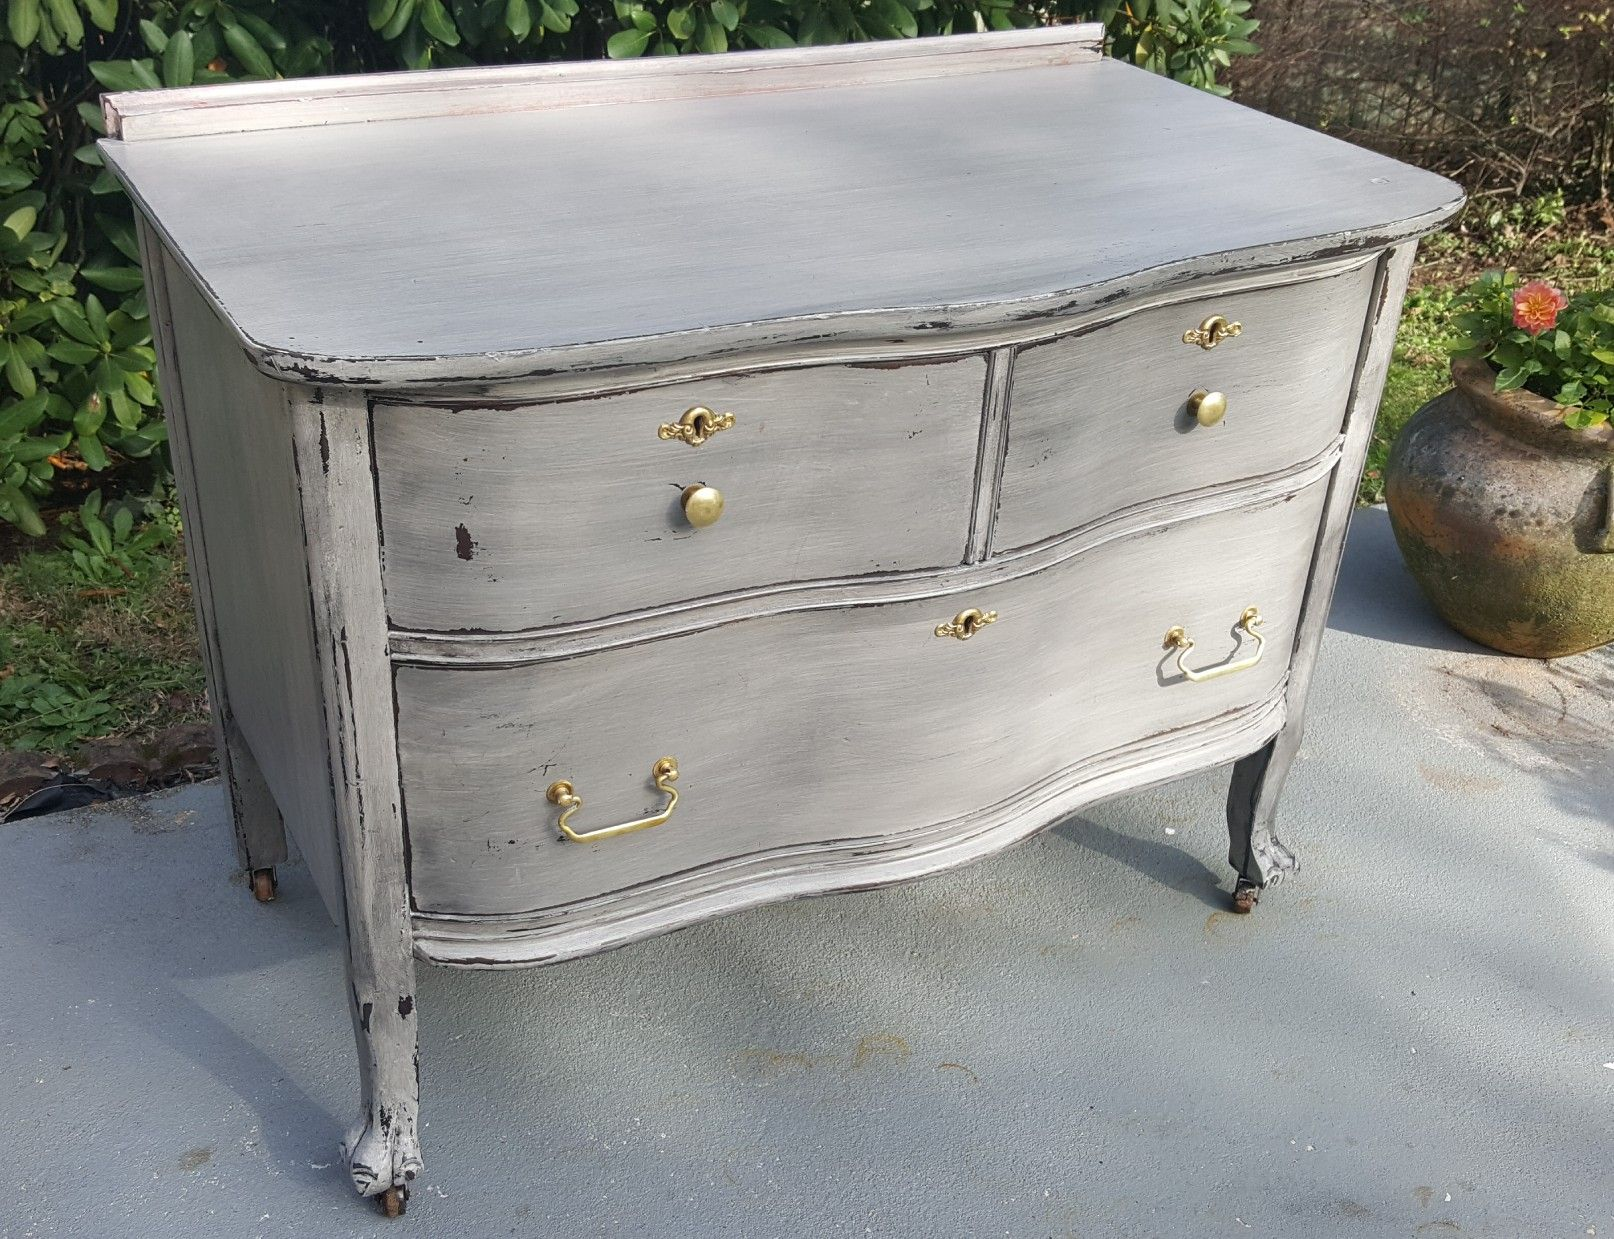 Ordinaire Antique Small Dresser In Washed Out Glazed Grey By Hello Gorgeous Co. 912  In York